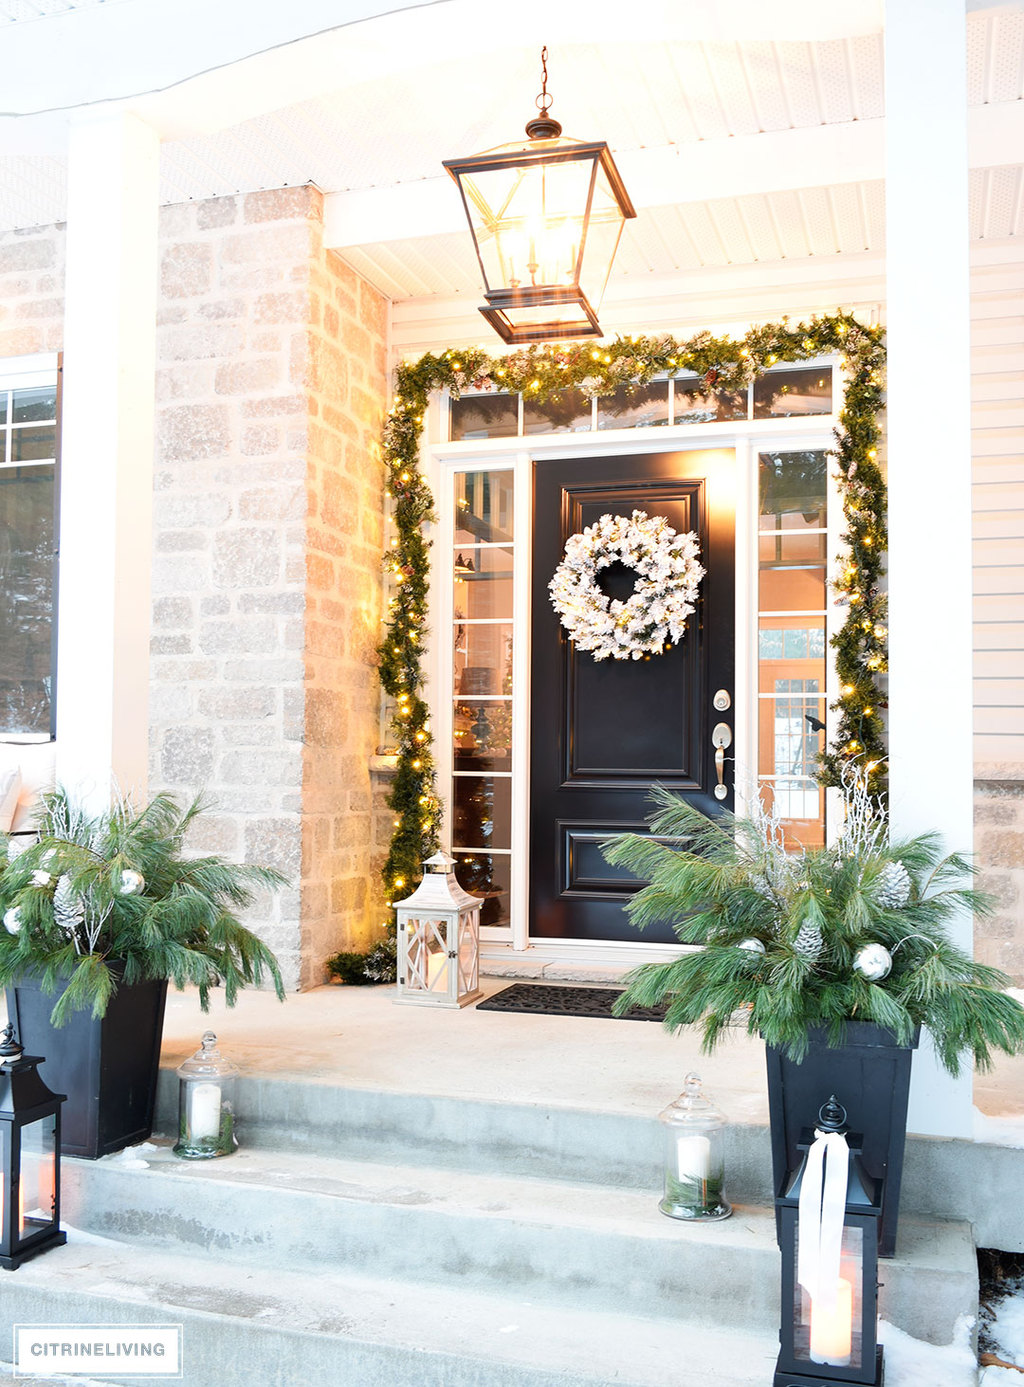 citrineliving outdoor christmas decor and new lighting